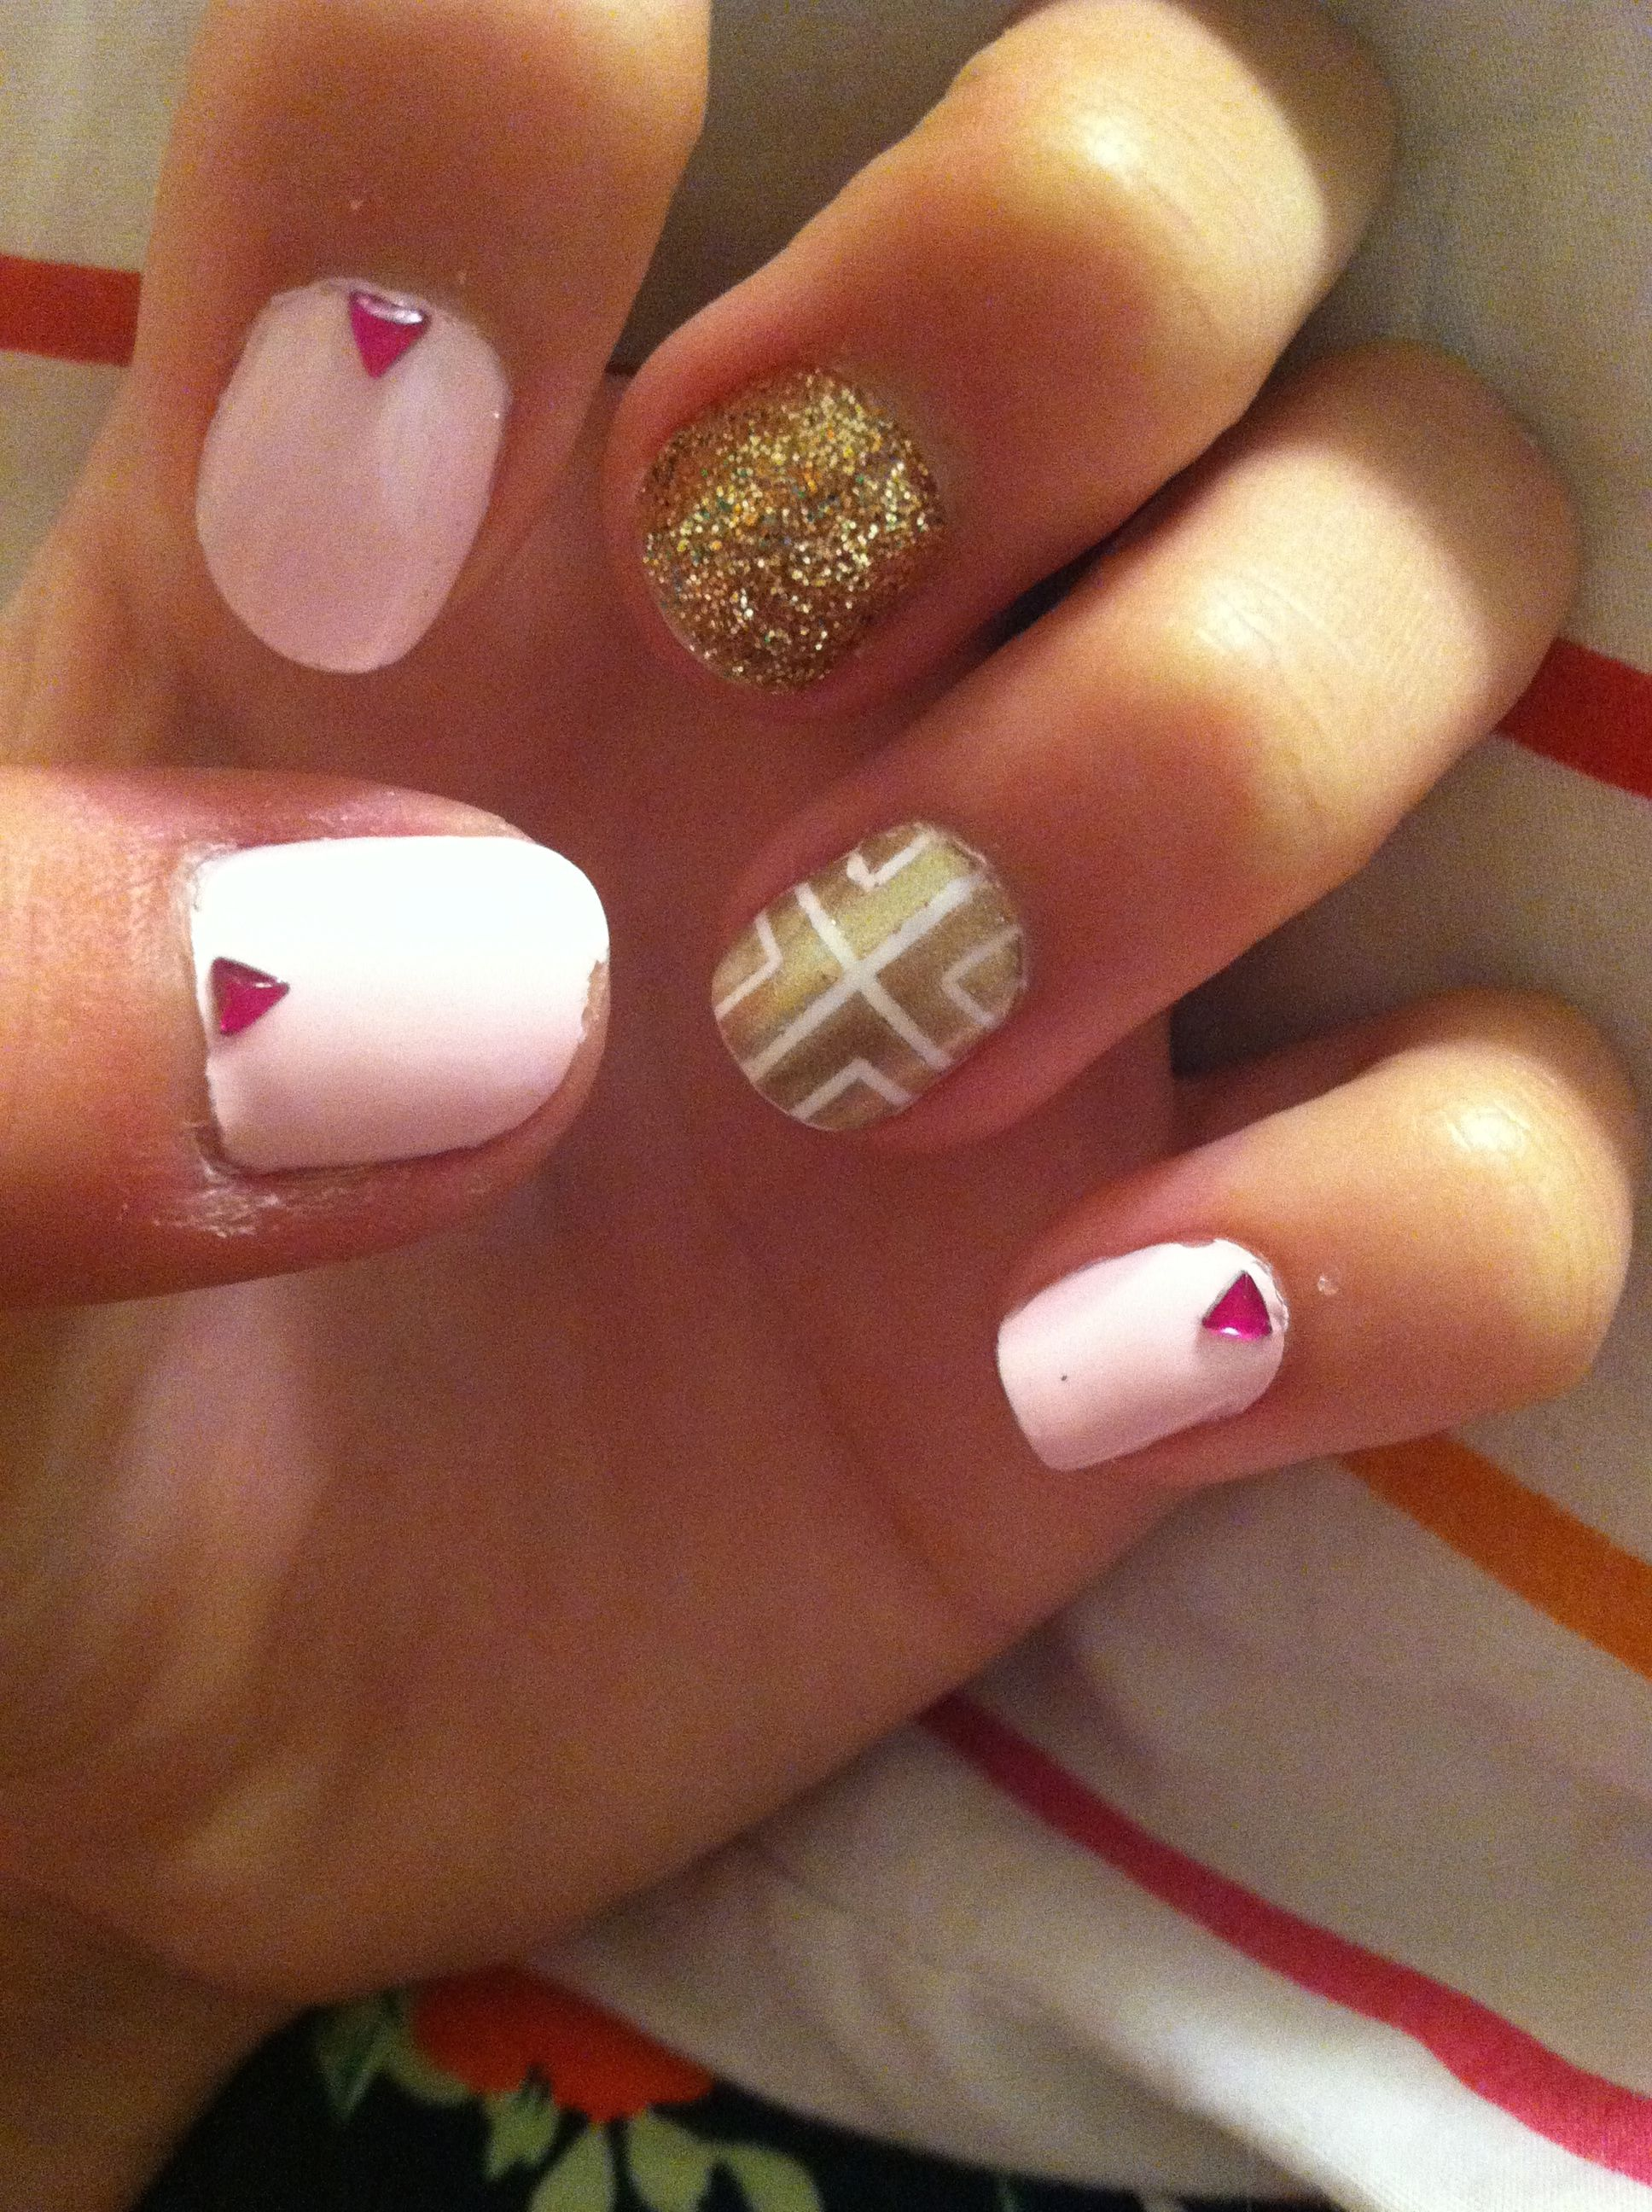 Pink Nails With Triangle Rhinestones A Gold Nail And Gold And